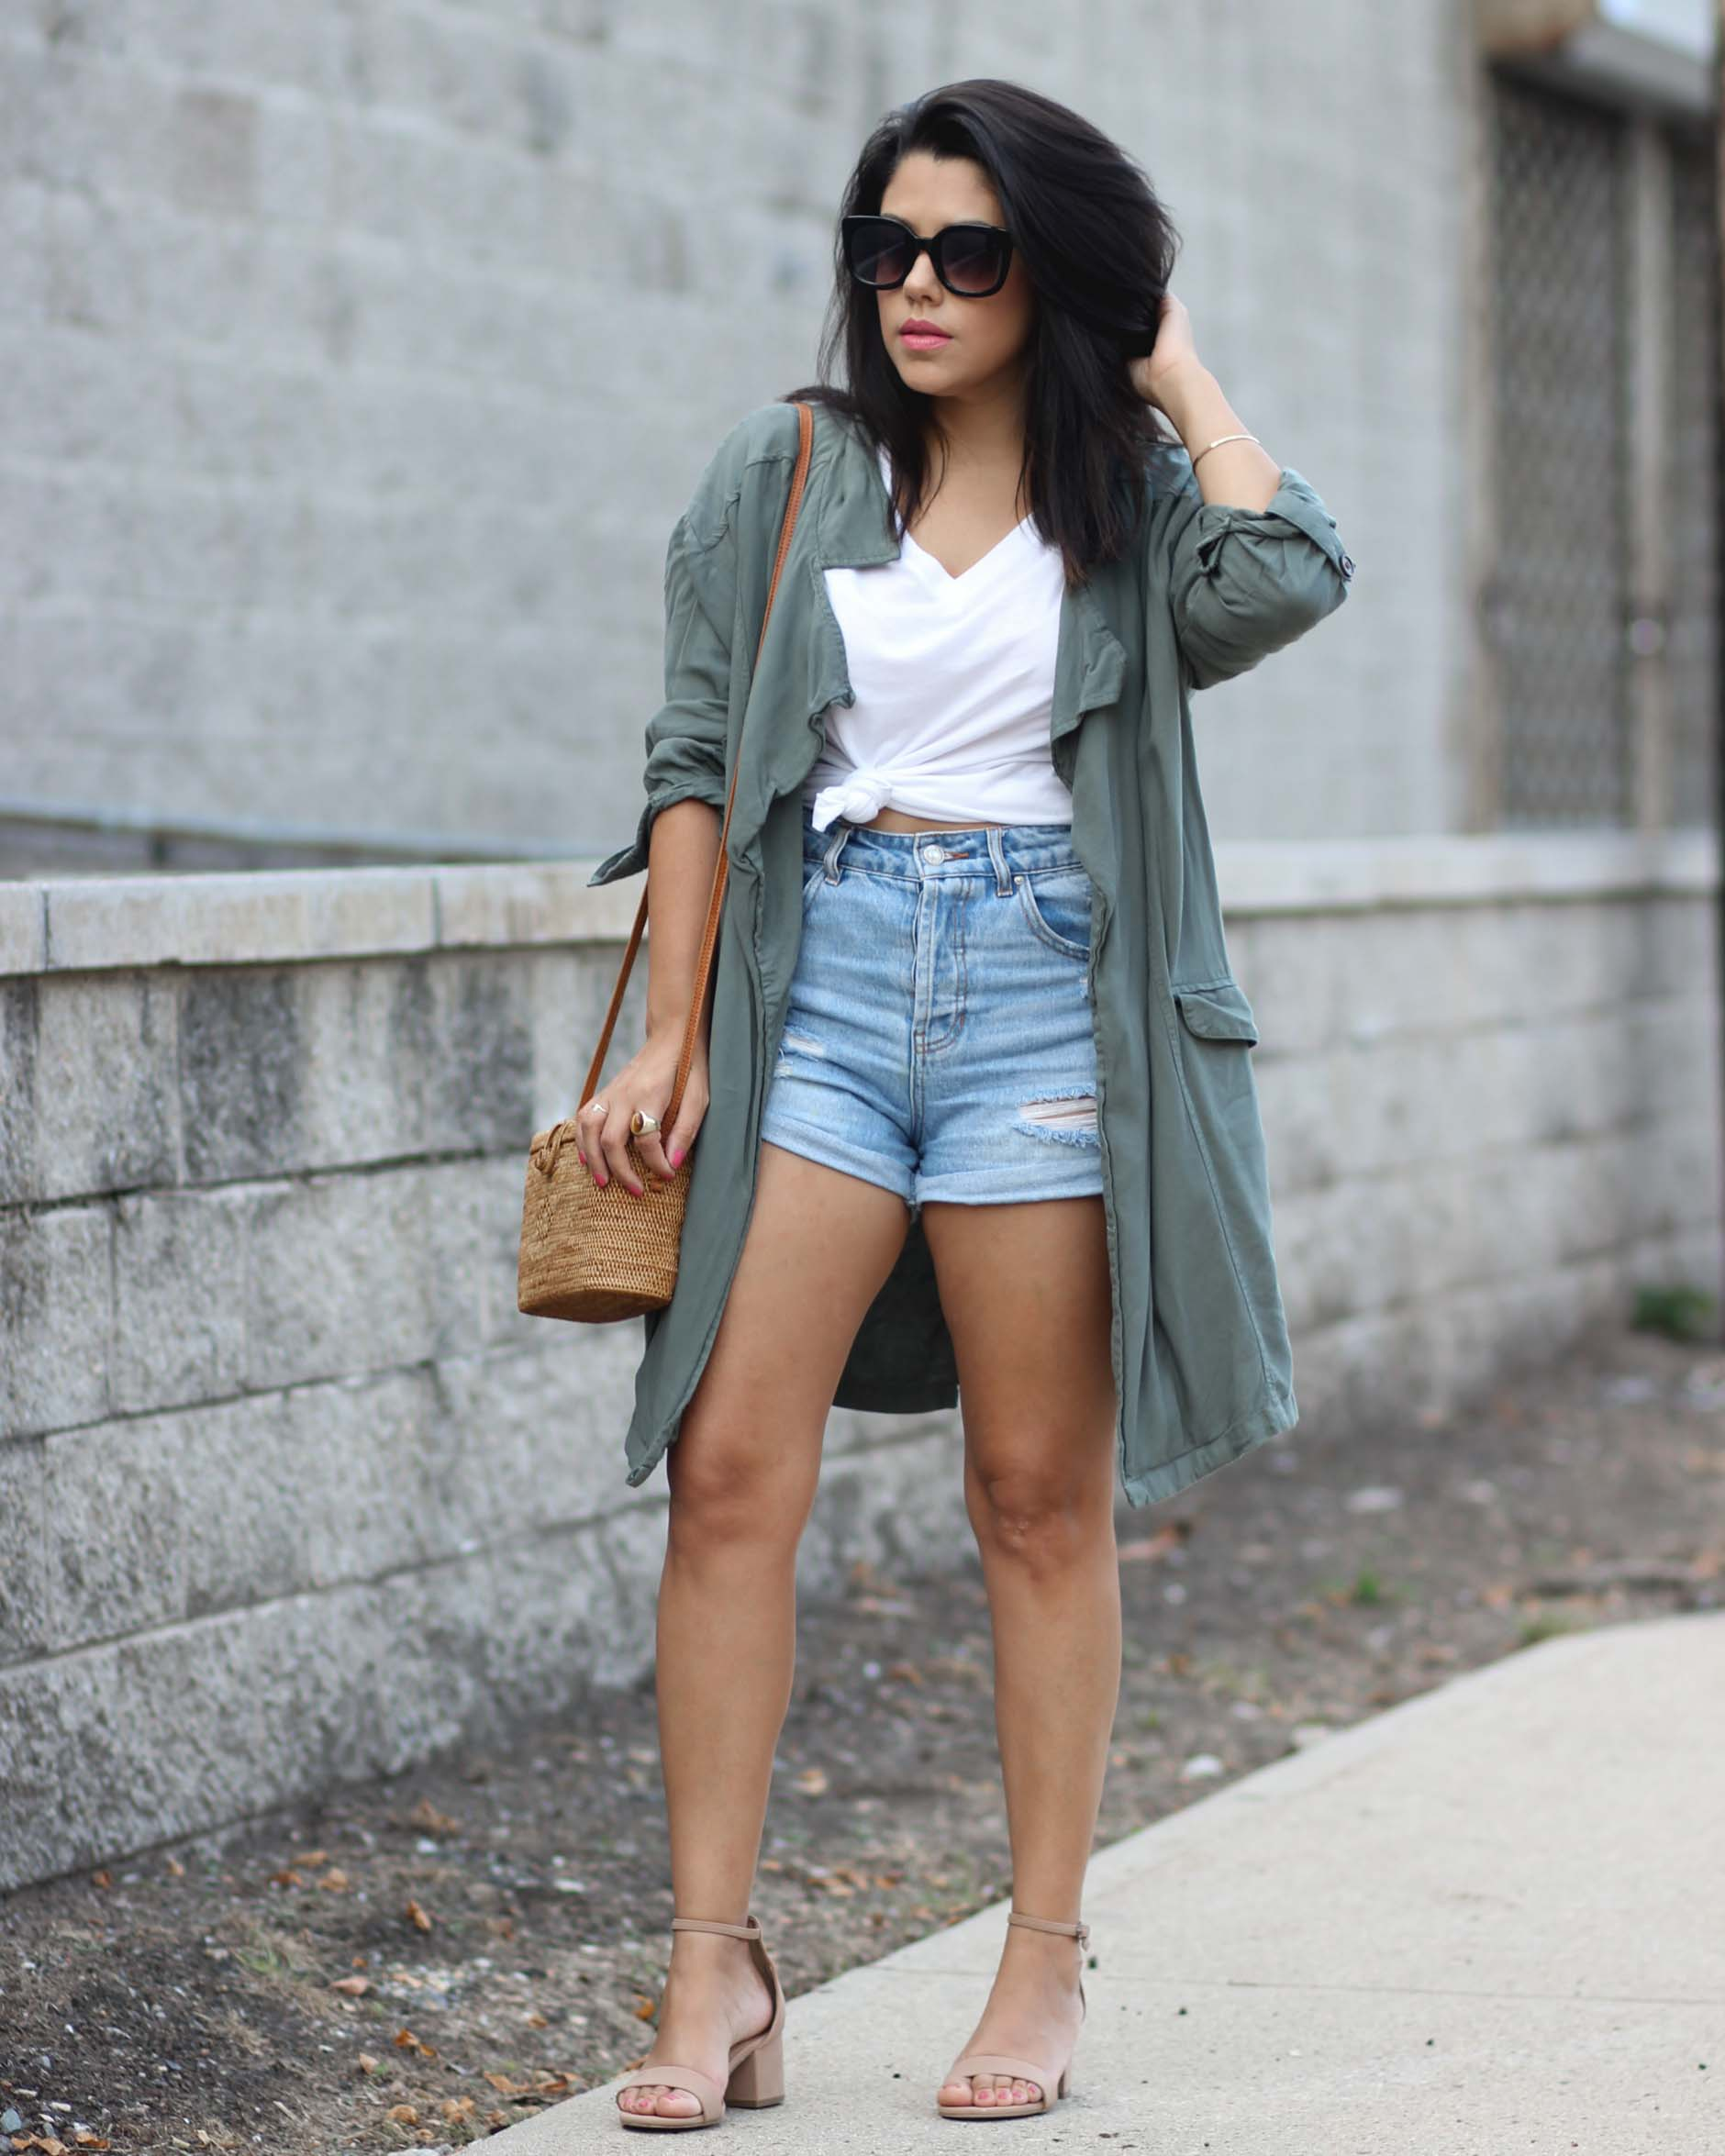 lifestyle blogger naty michele standing in a knotted tee with a trench coat and denim shorts